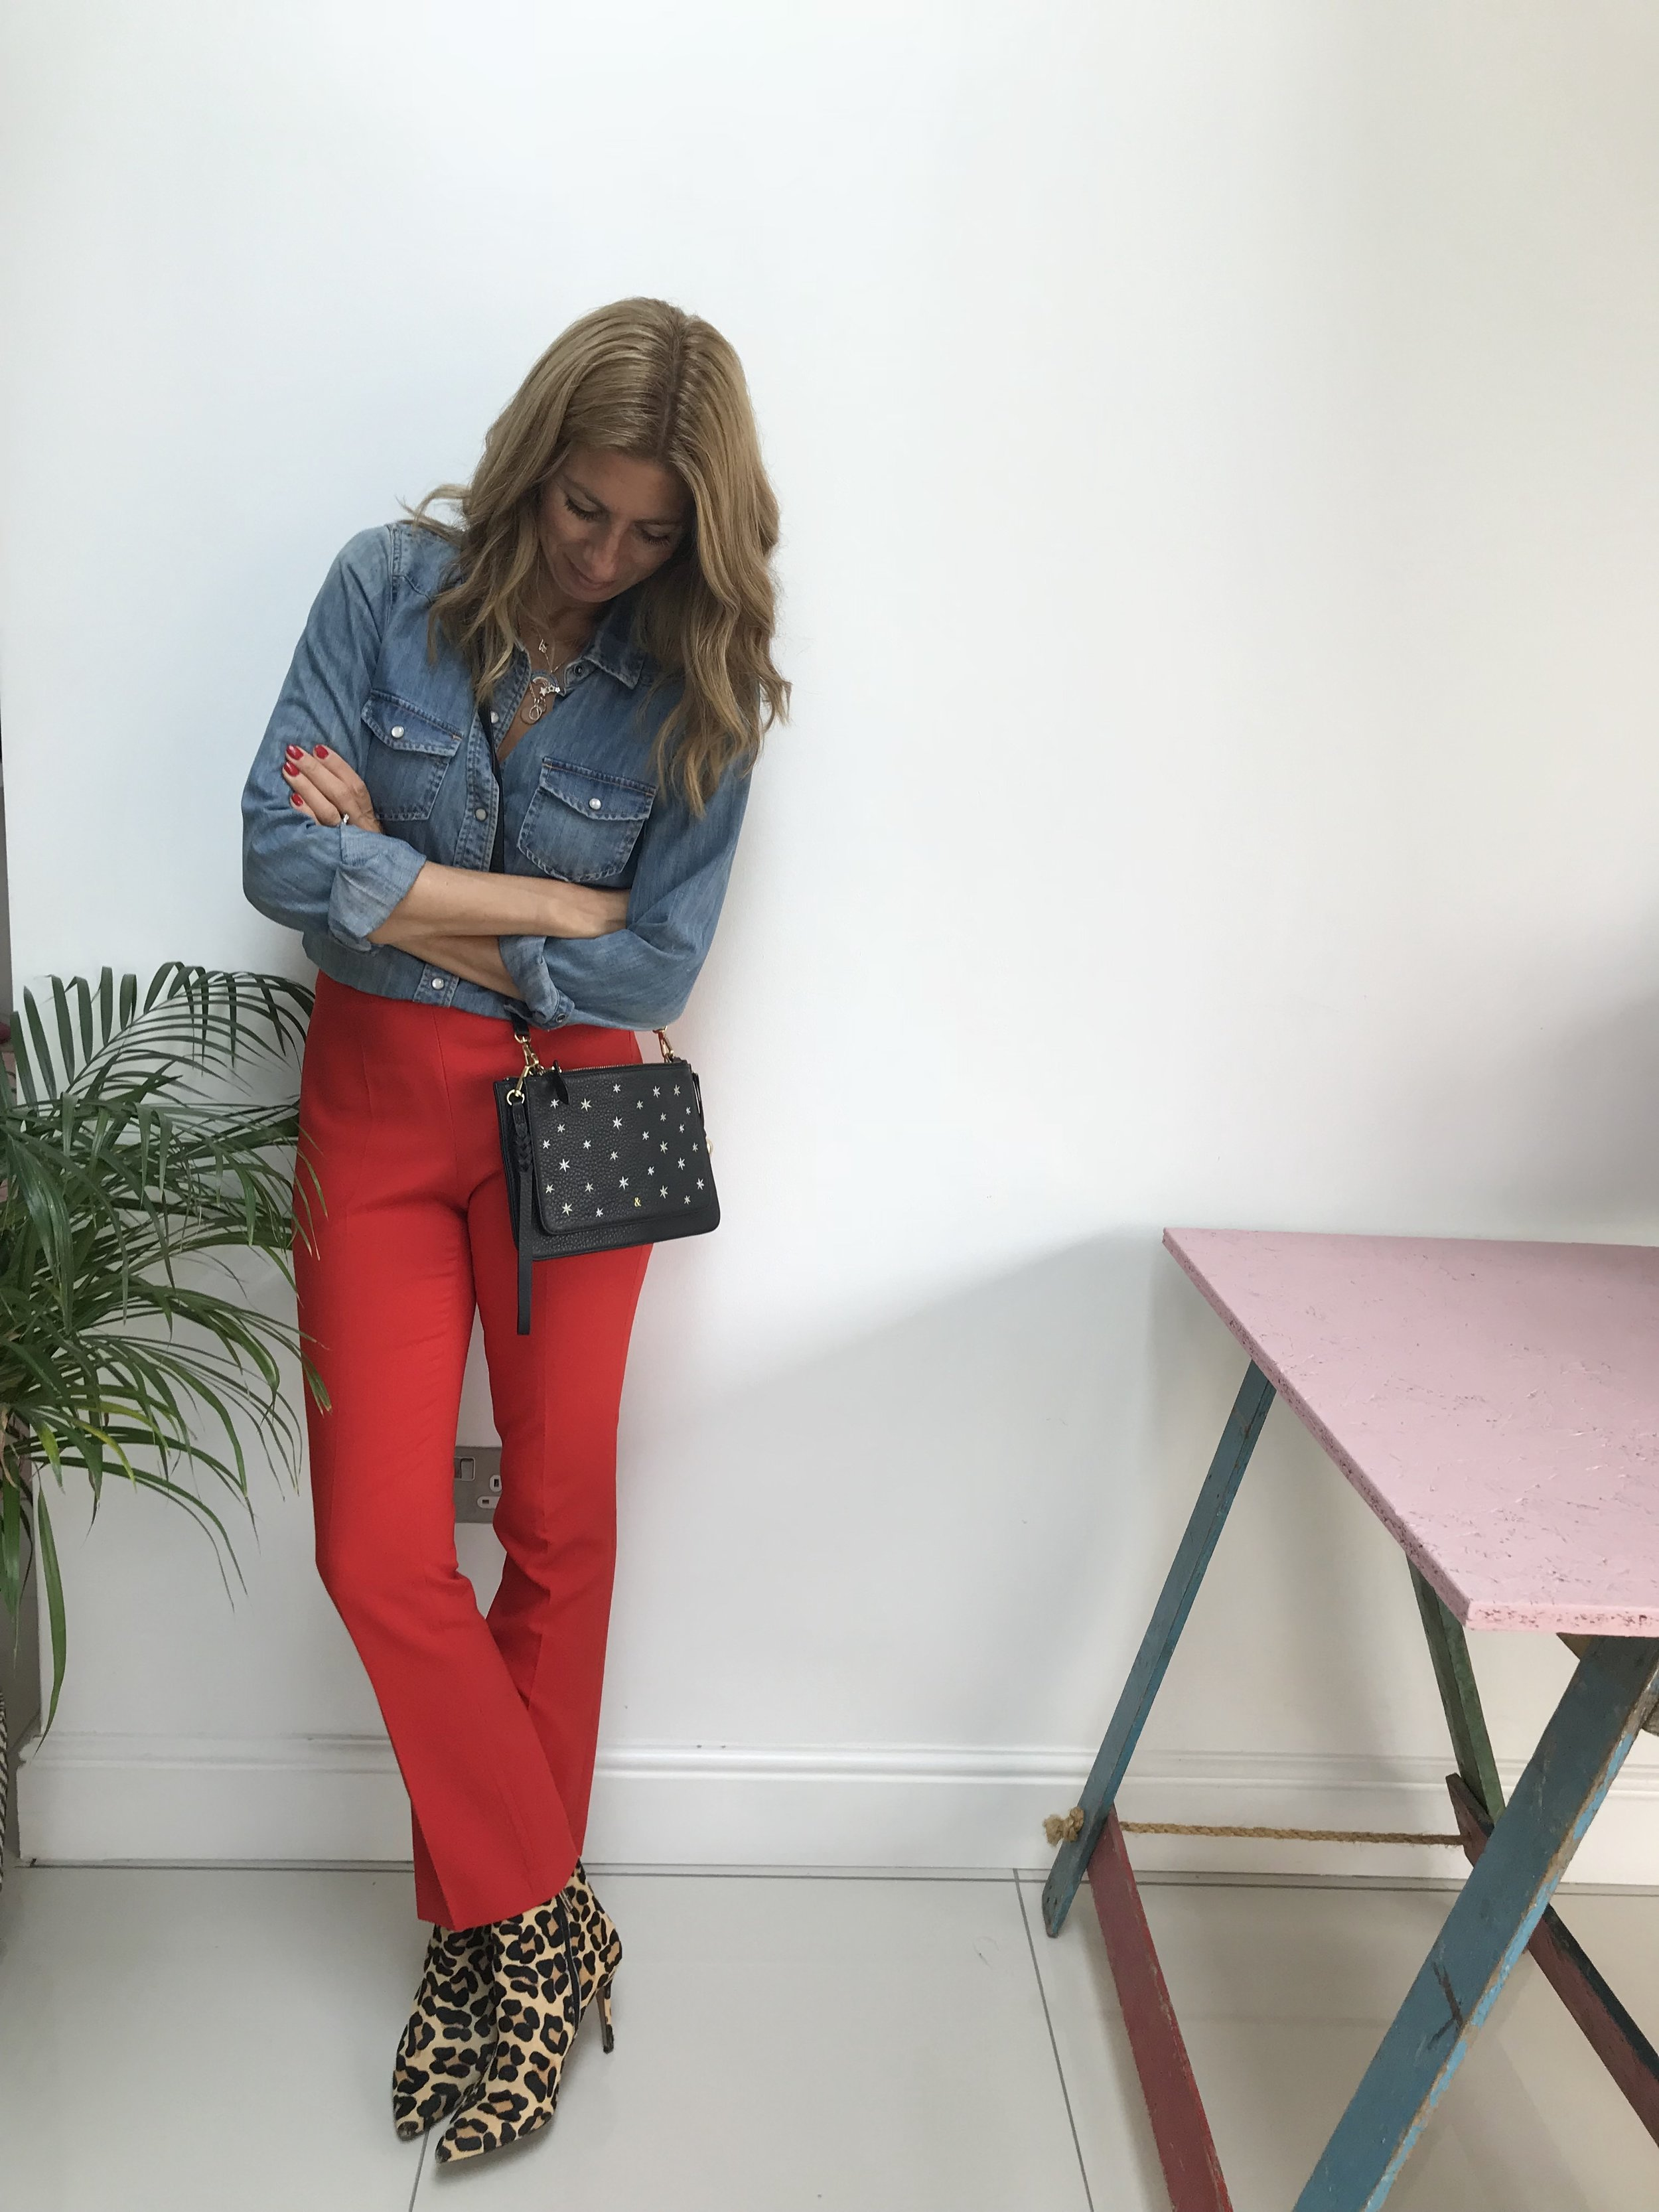 Shirt (old): J Crew  Asos  (similar style) Trousers (old): Topshop  Asos  (similar style) Boots(old):  Hush (similar style) Bag:  Bell & Fox